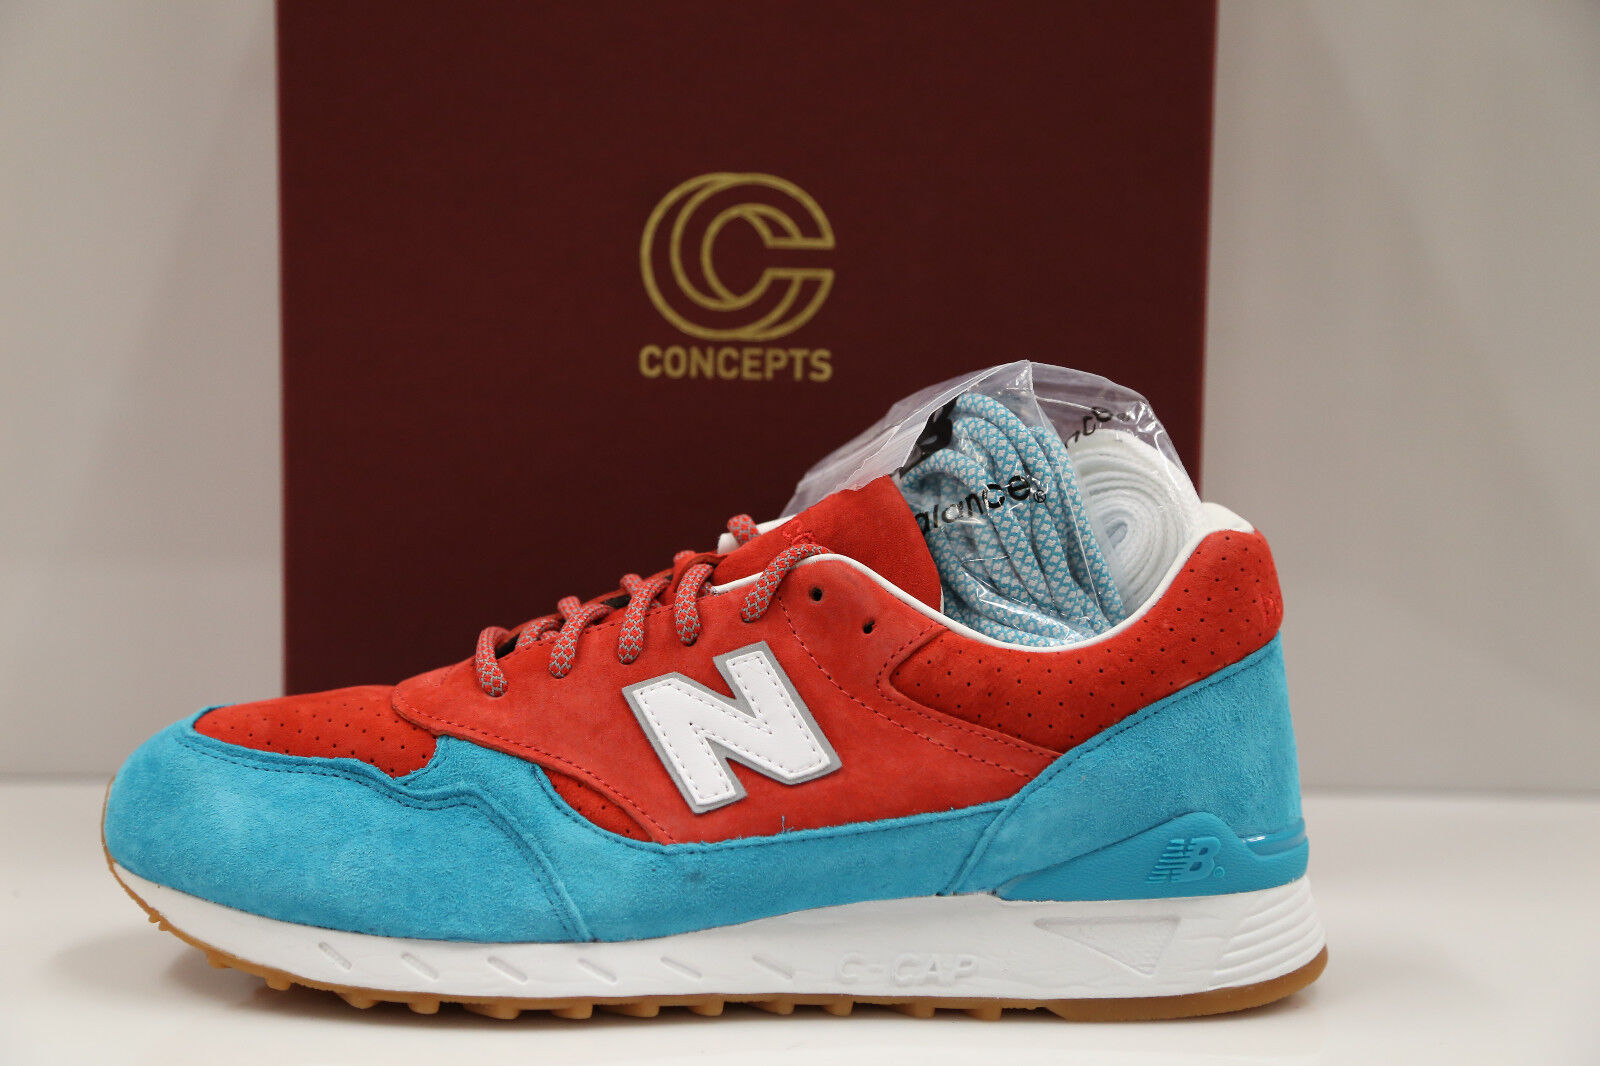 New Balance X Concepts 496 Regatta Pool bluee Special Box Edt 7-11 11.5-13 997